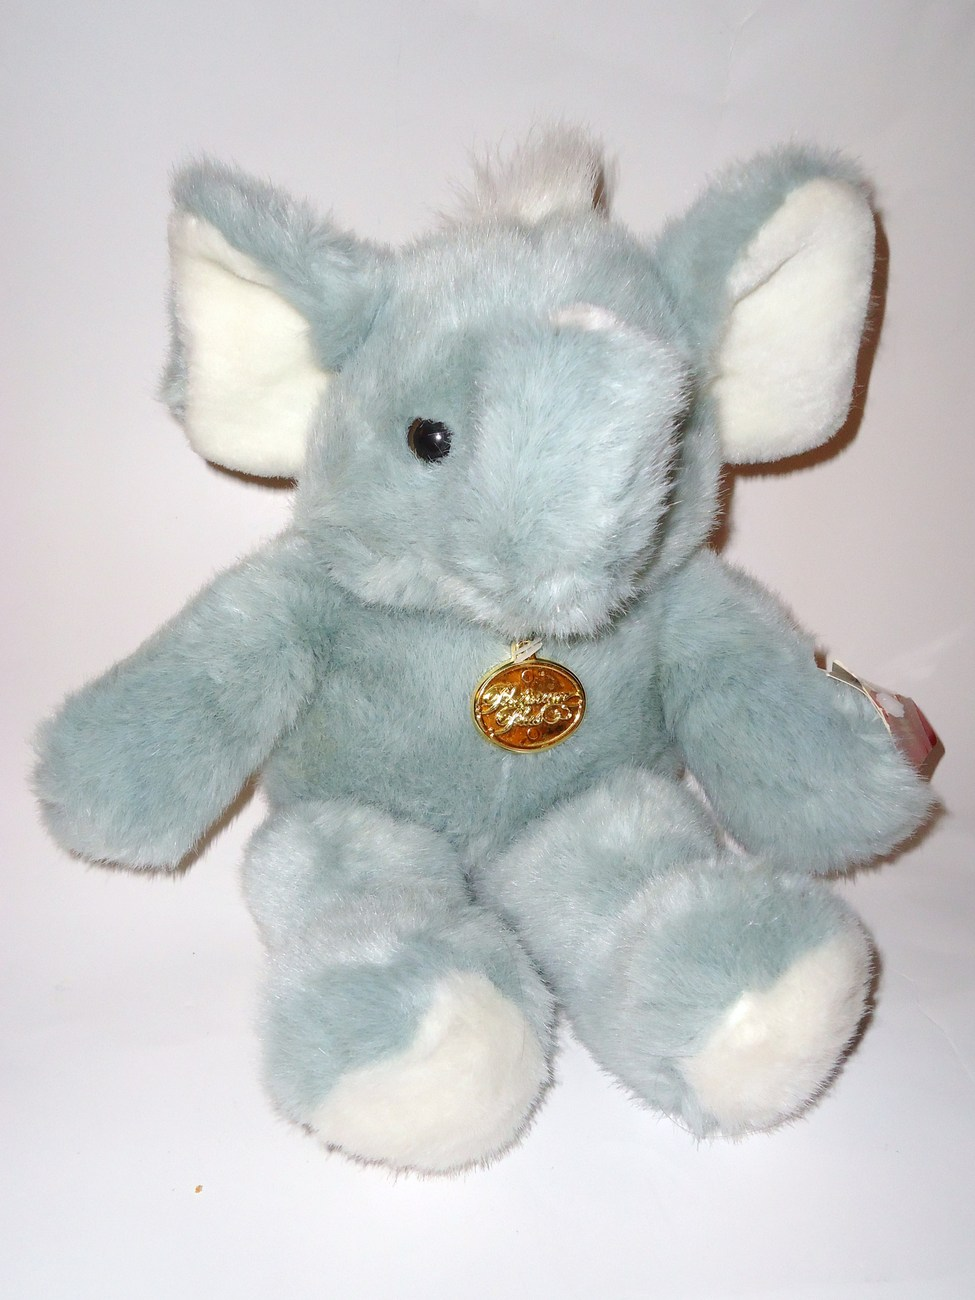 Walmart Elephant Plush Stuffed Animal Gray White Tb Trading Platinum Plus